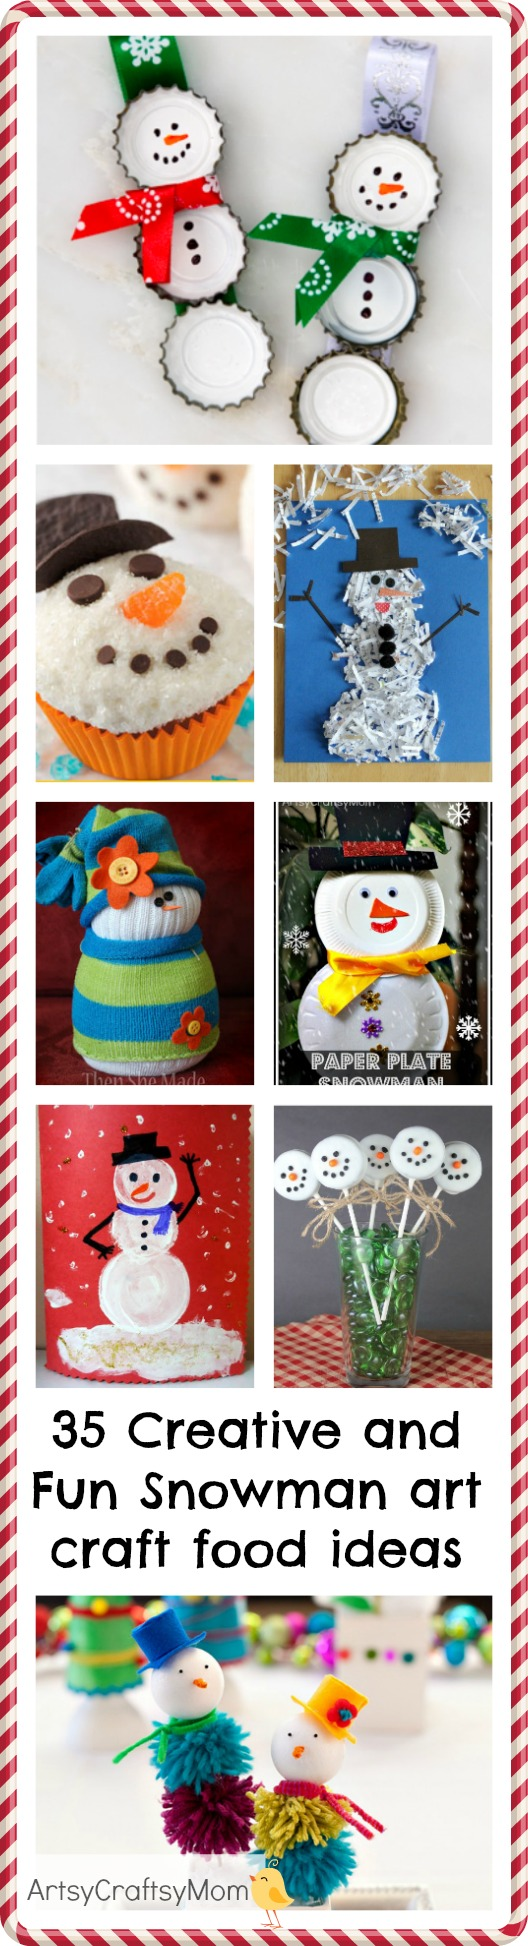 35 Creative and Fun Snowman art craft food ideas